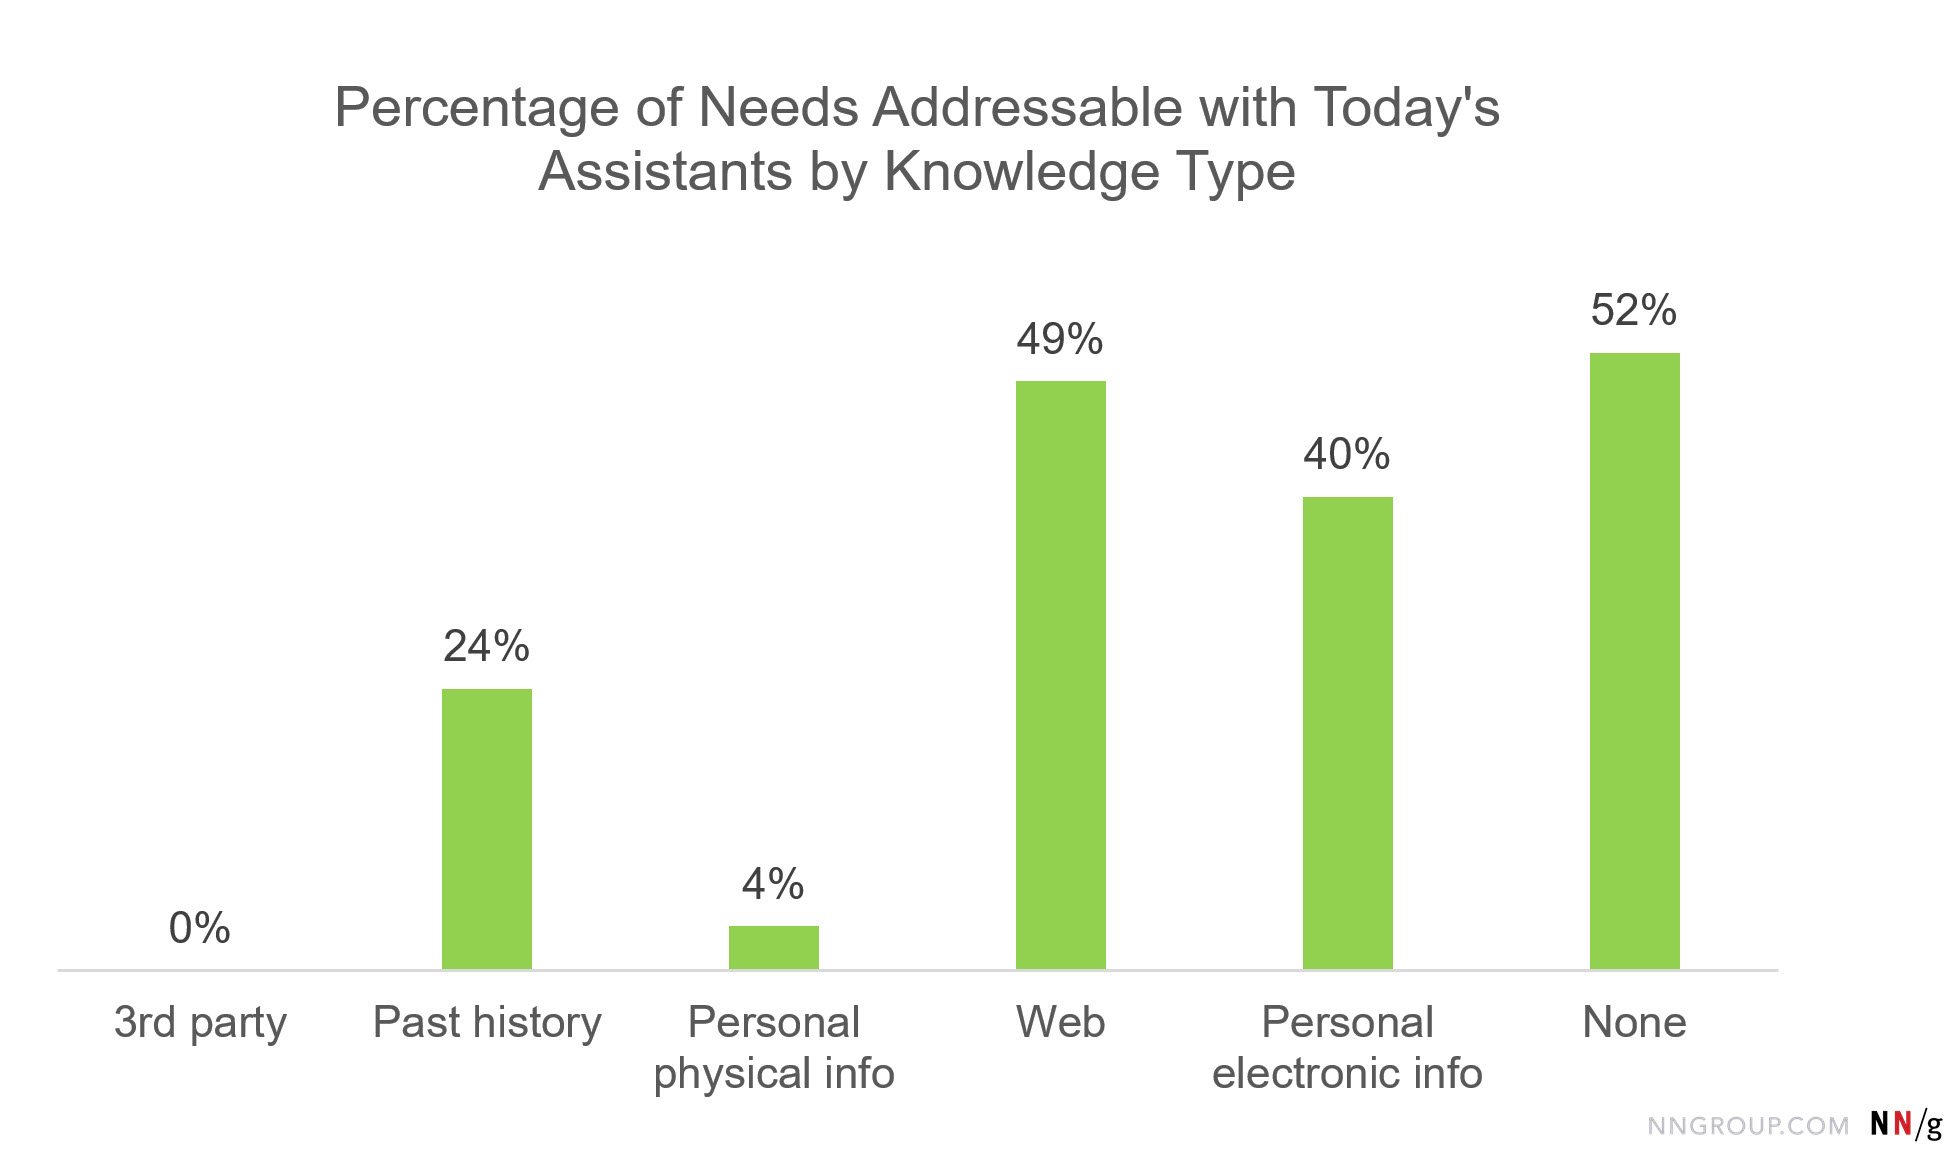 Bar chart: Percentage of Needs Addressable with Today's Assistants by Knowledge Type